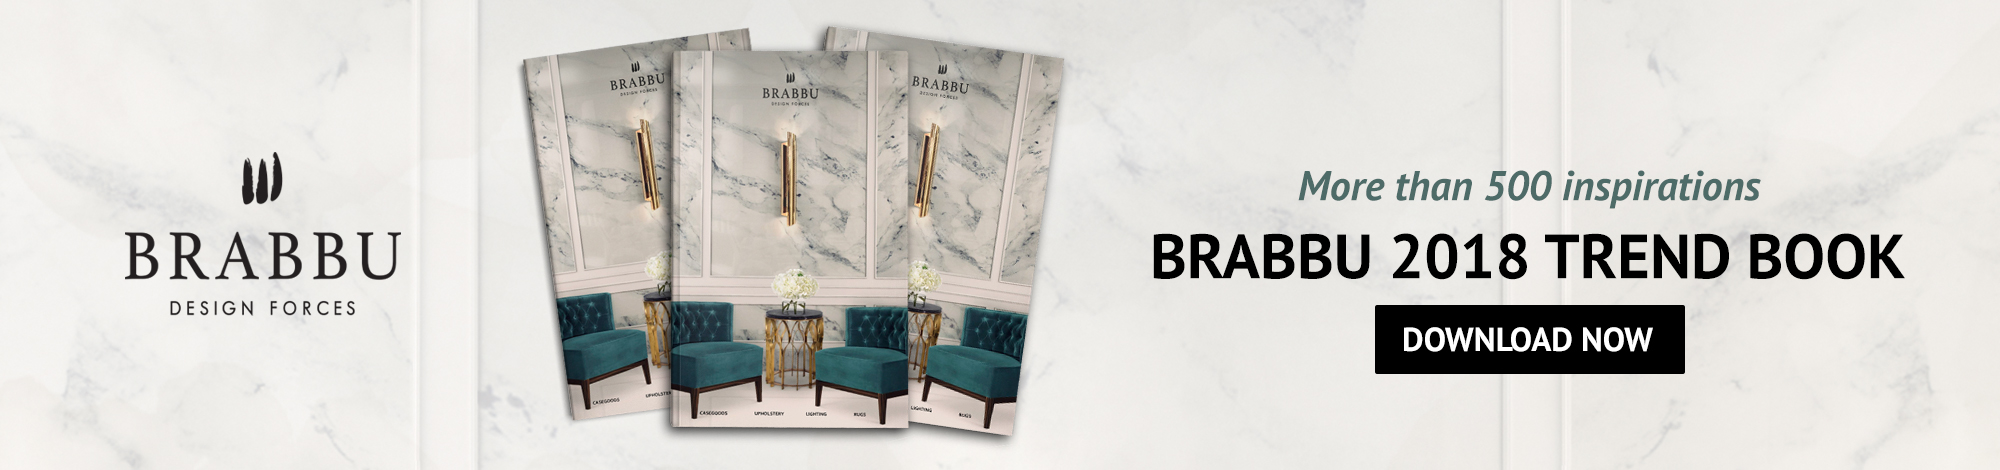 BRABBU Catalogue essex collection The Essex Collection: Where Fauna Meets Interior Design  1C5EB82328DCFD5BD10428DB124BD945082C079483CACCDD2D pimgpsh fullsize distr